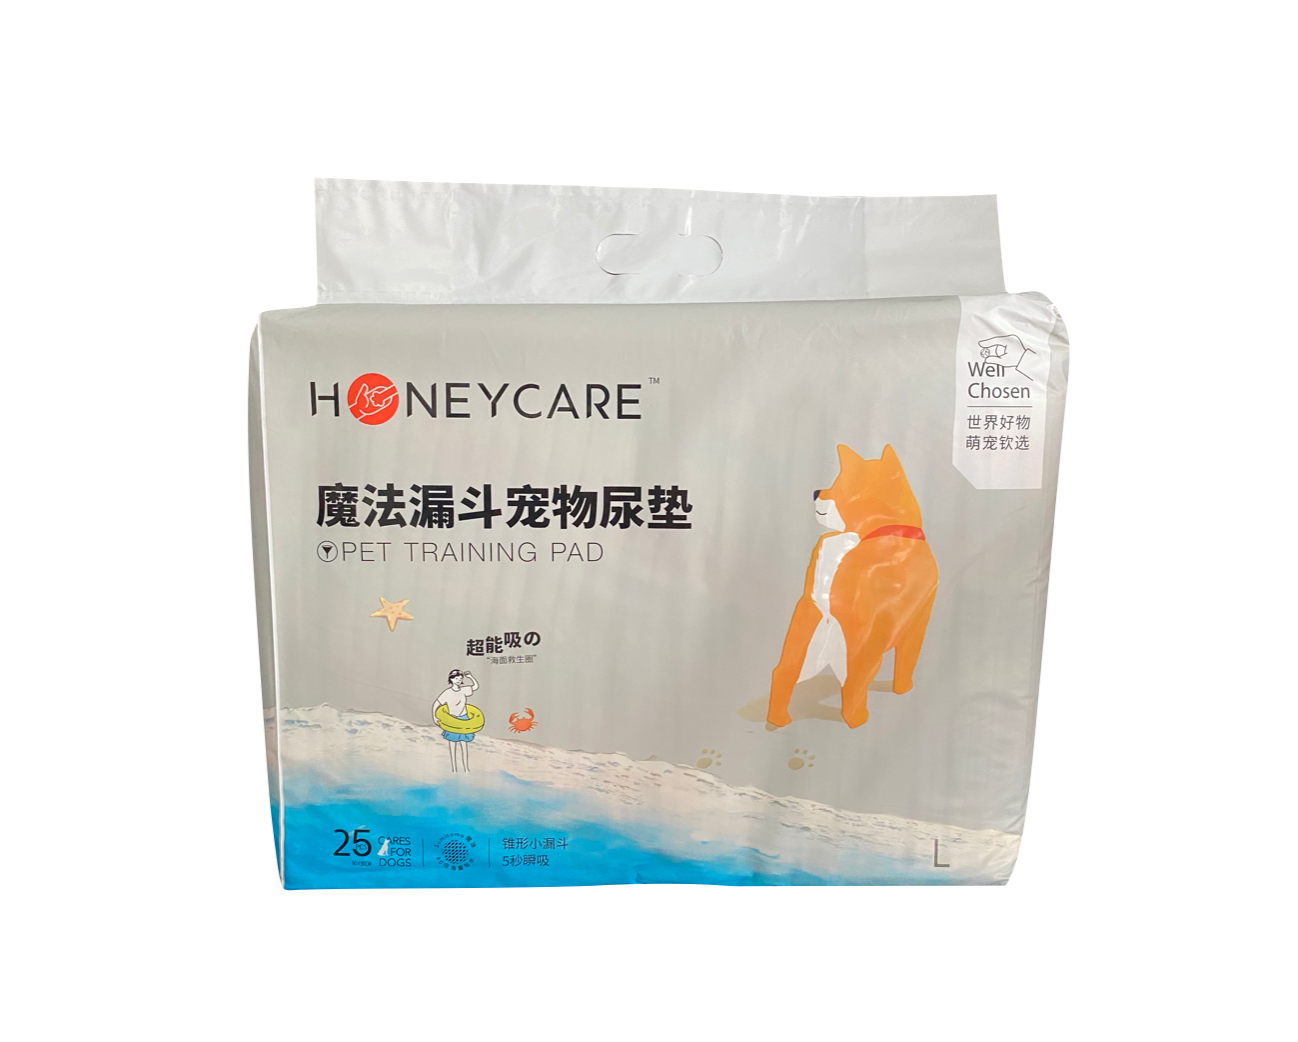 HONEYCARE【好命天生】Classic Toilet Training Pet Pads / Urine Wee Wee Pads 经典款宠物尿垫 (60cm x 90cm) 25pcs